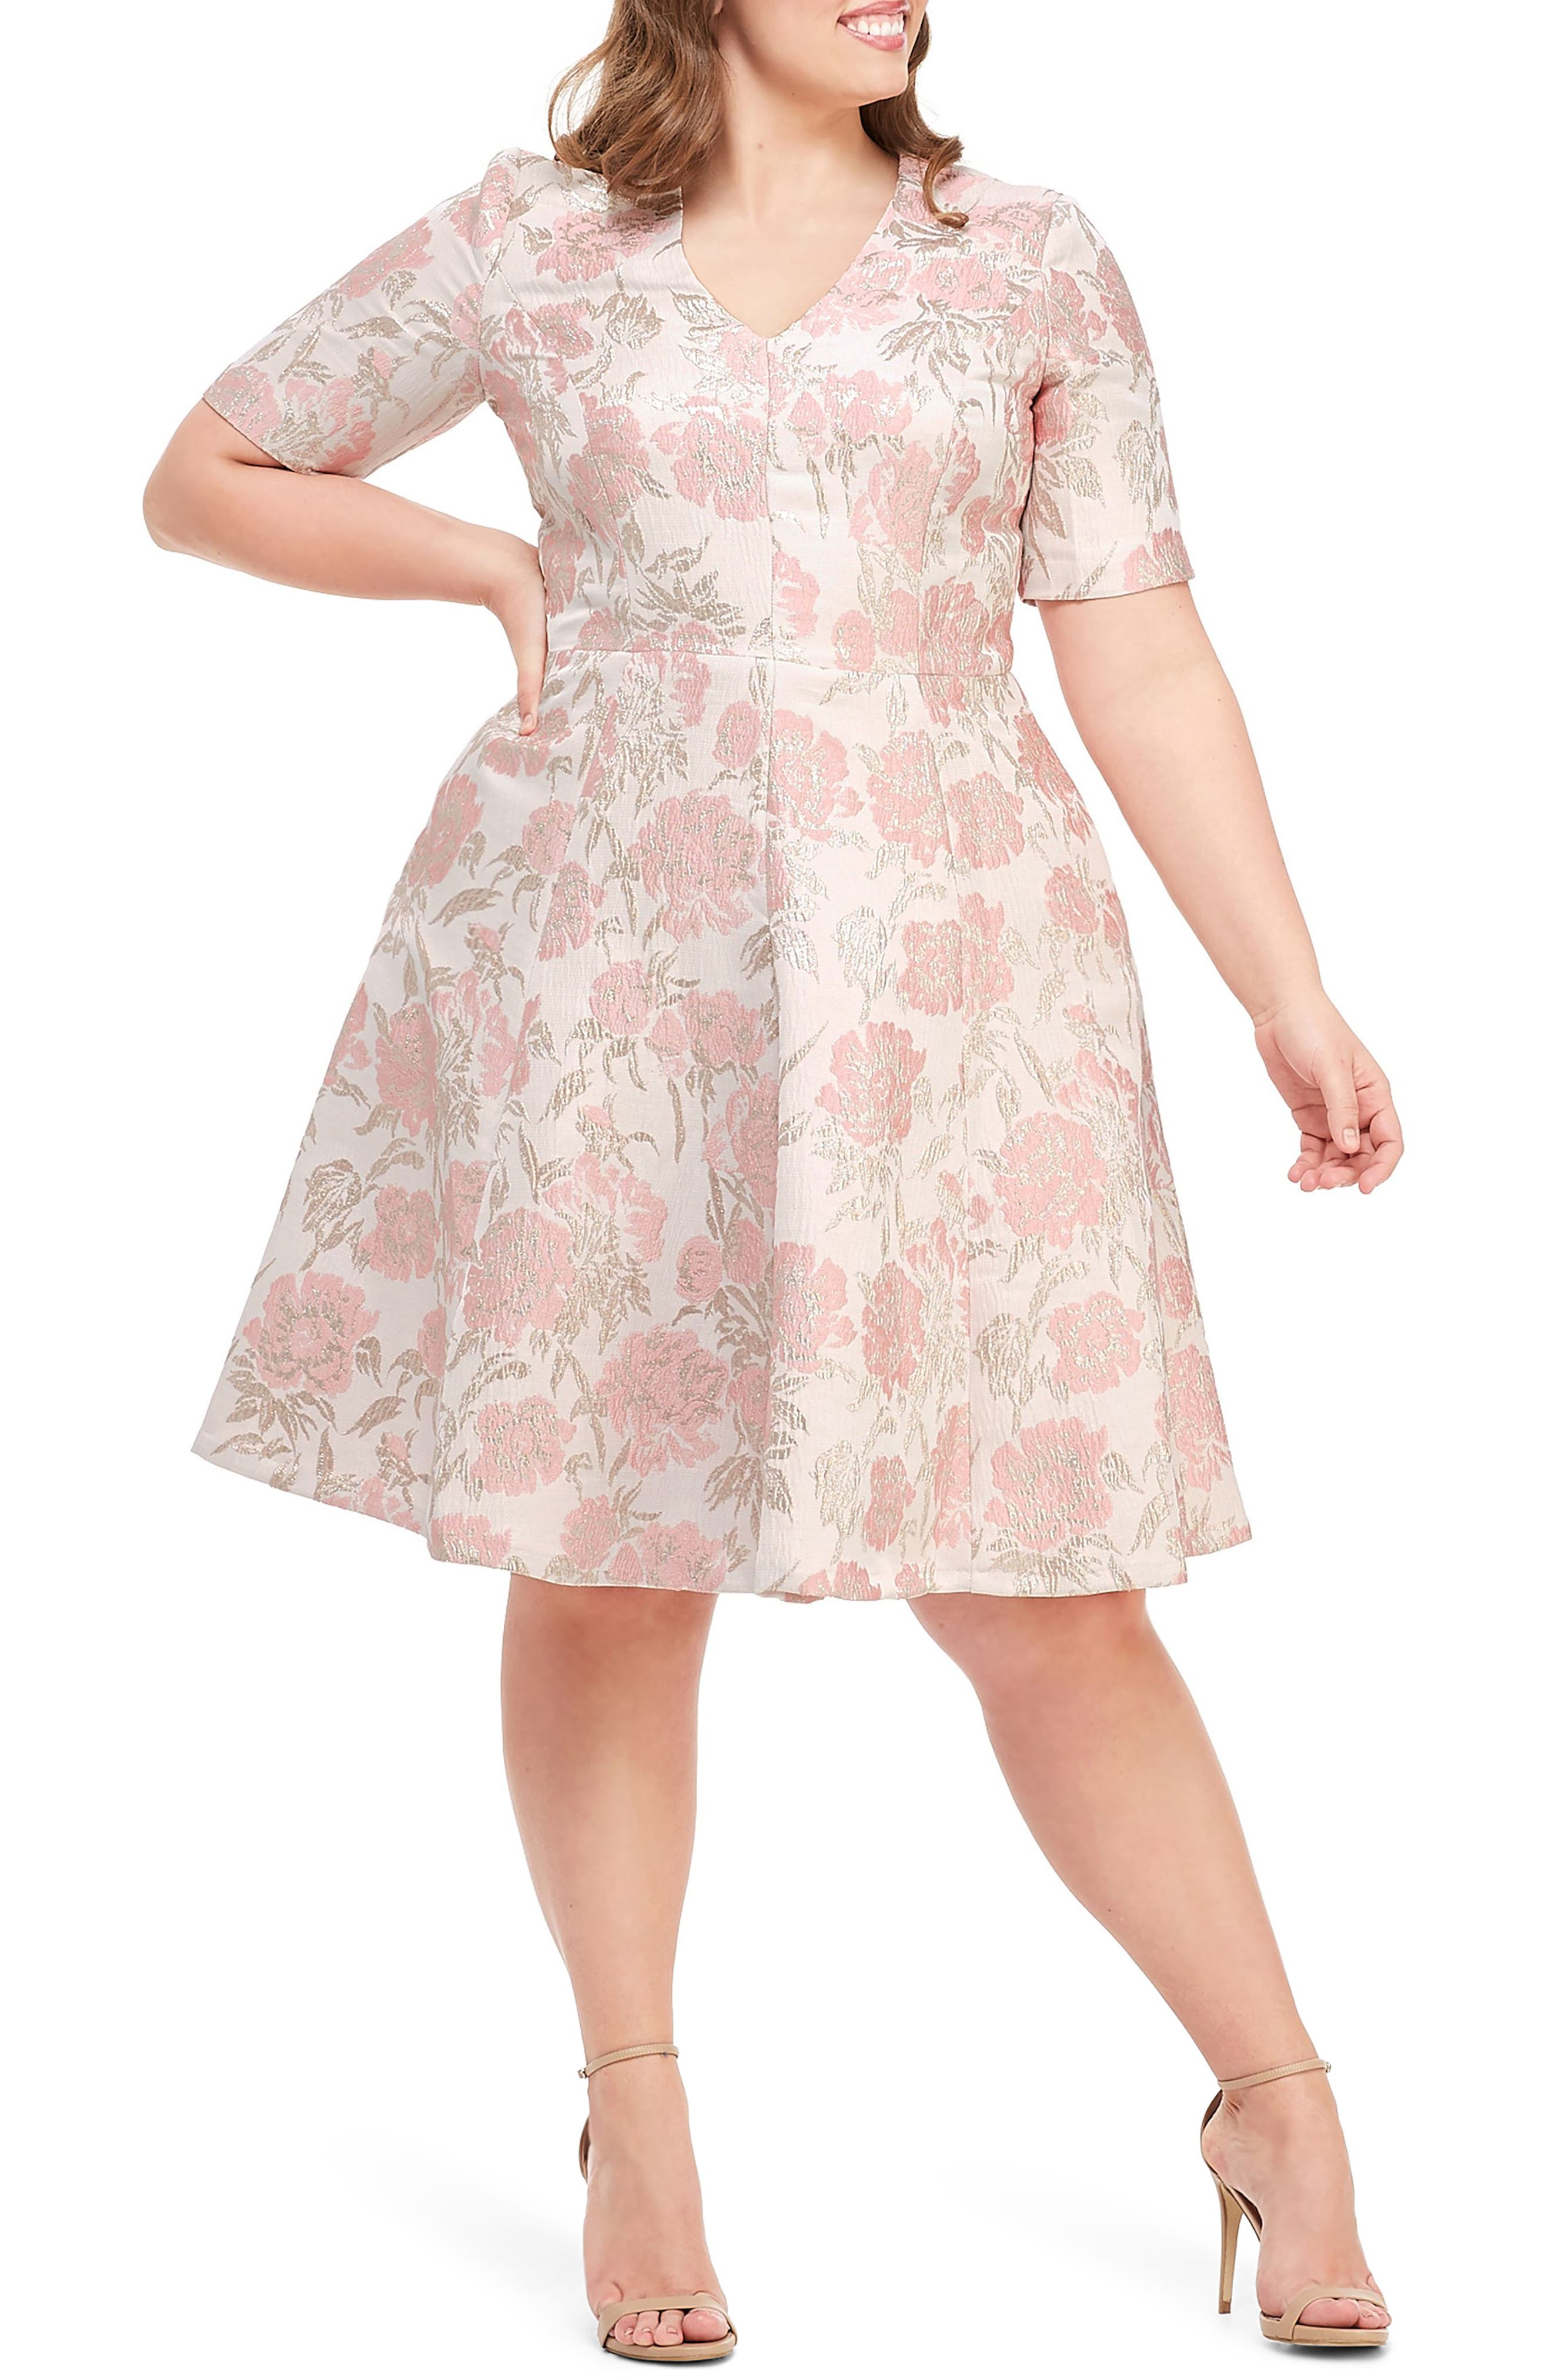 GAL MEETS GLAM COLLECTION, Adair Pink Passion Rose Jacquard Fit & Flare Dress, Alternate thumbnail 2, color, 685